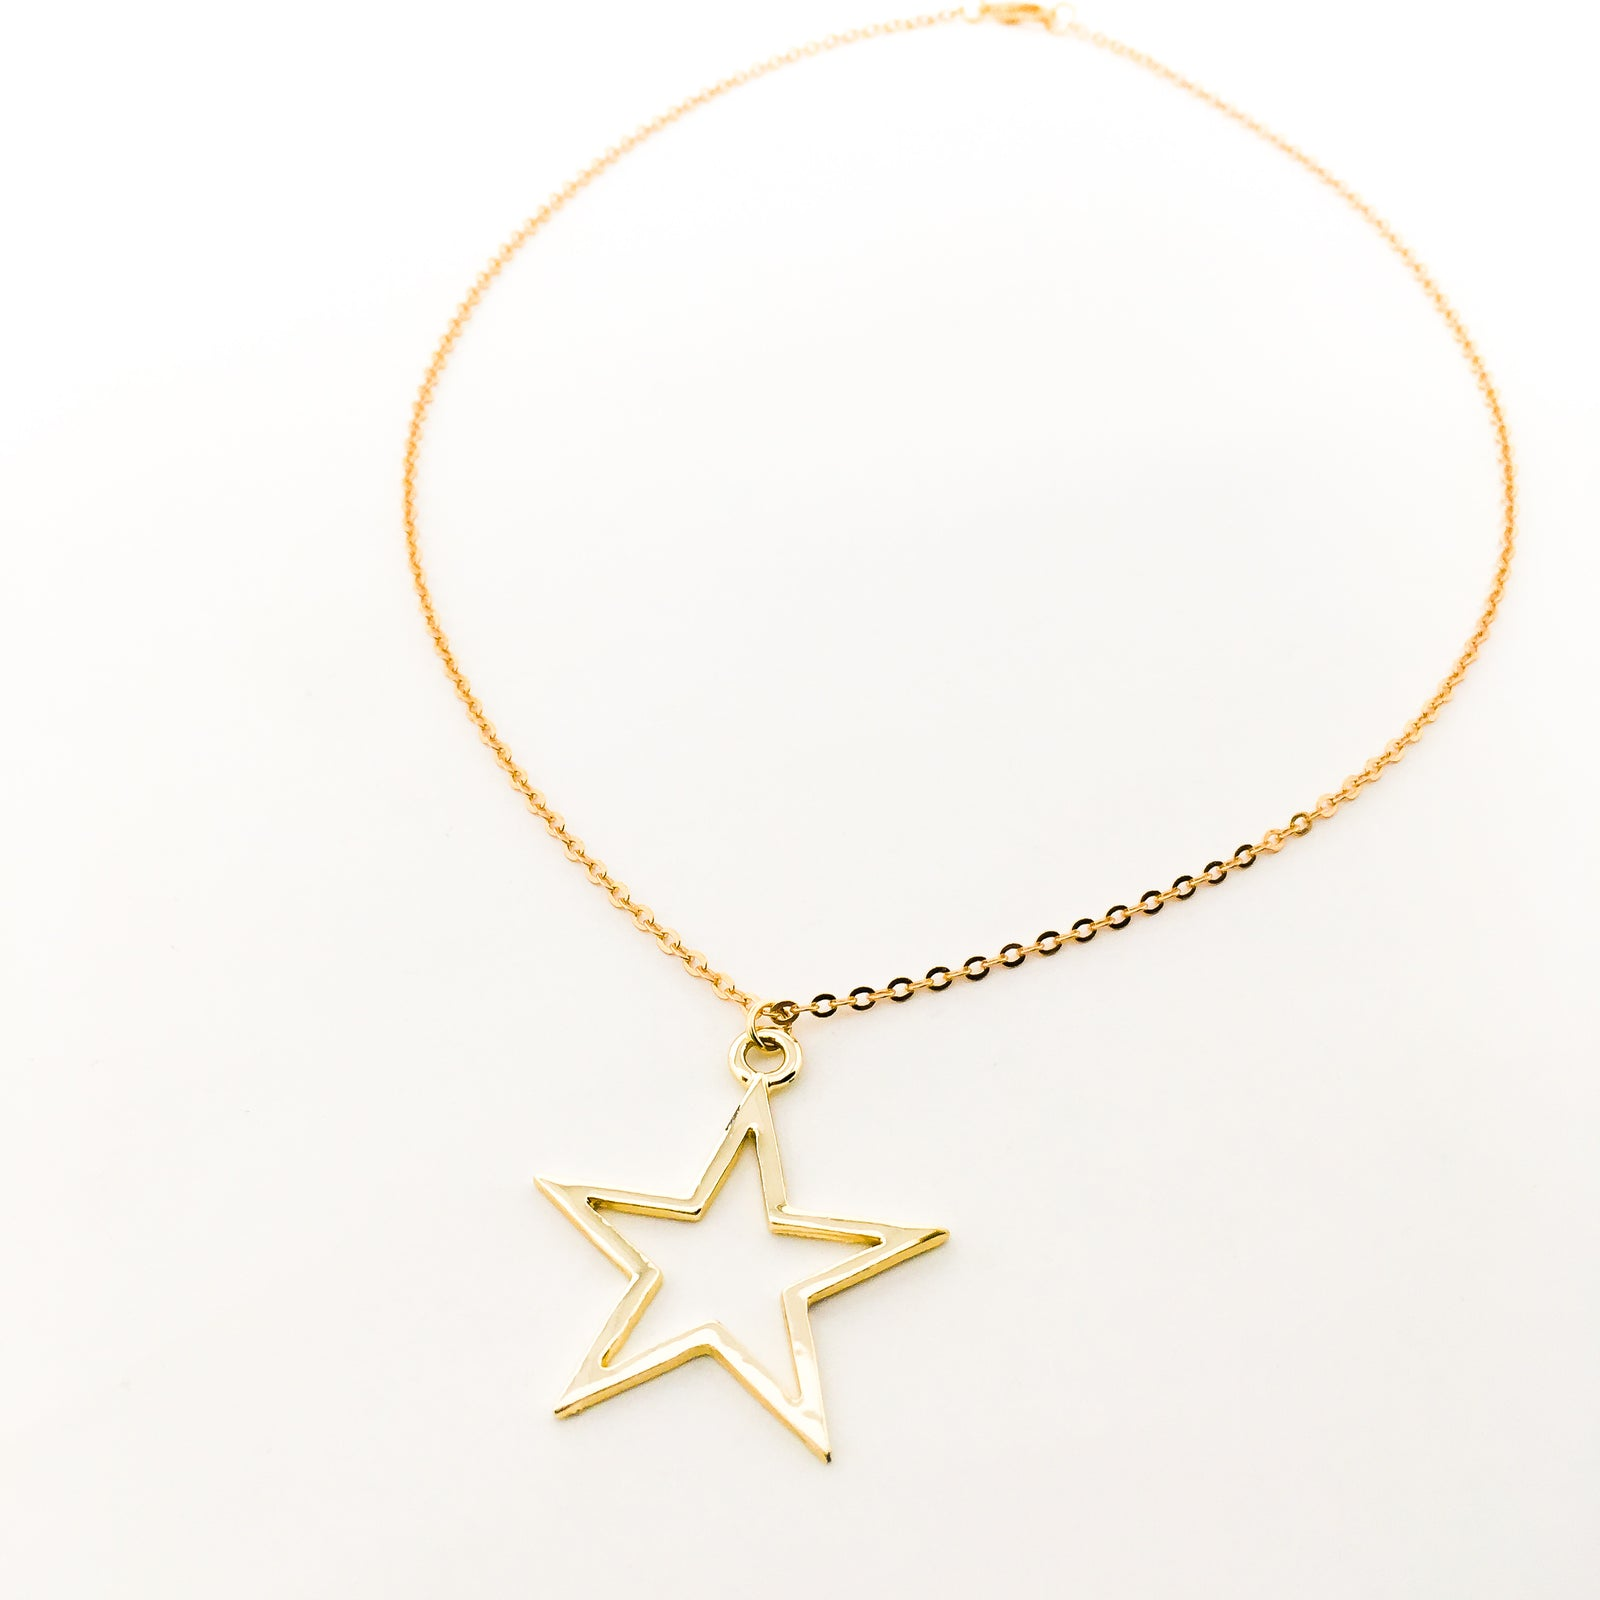 BRIGHT STAR NECKLACE | GOLD